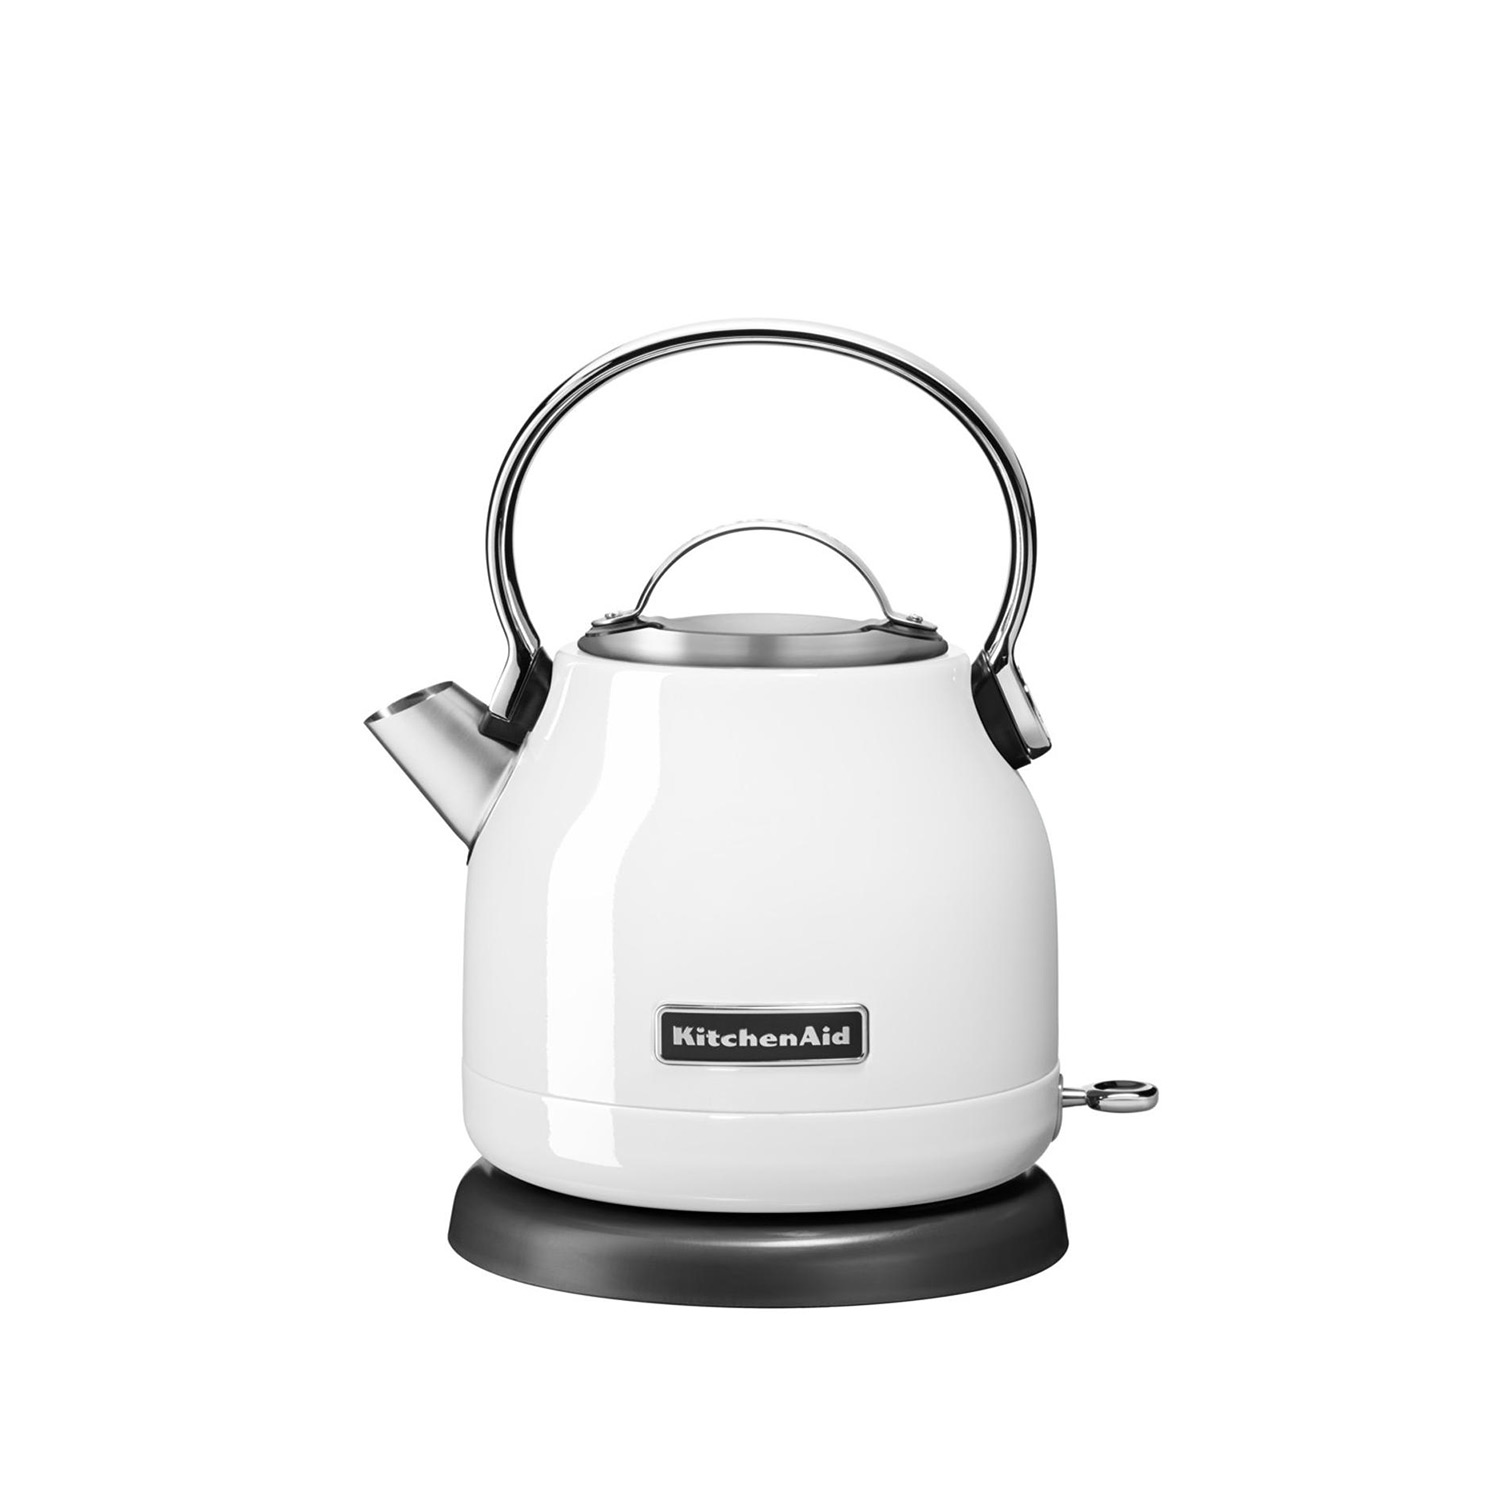 KitchenAid 5K45SSBWH 1.25 Litre Dome Kettle